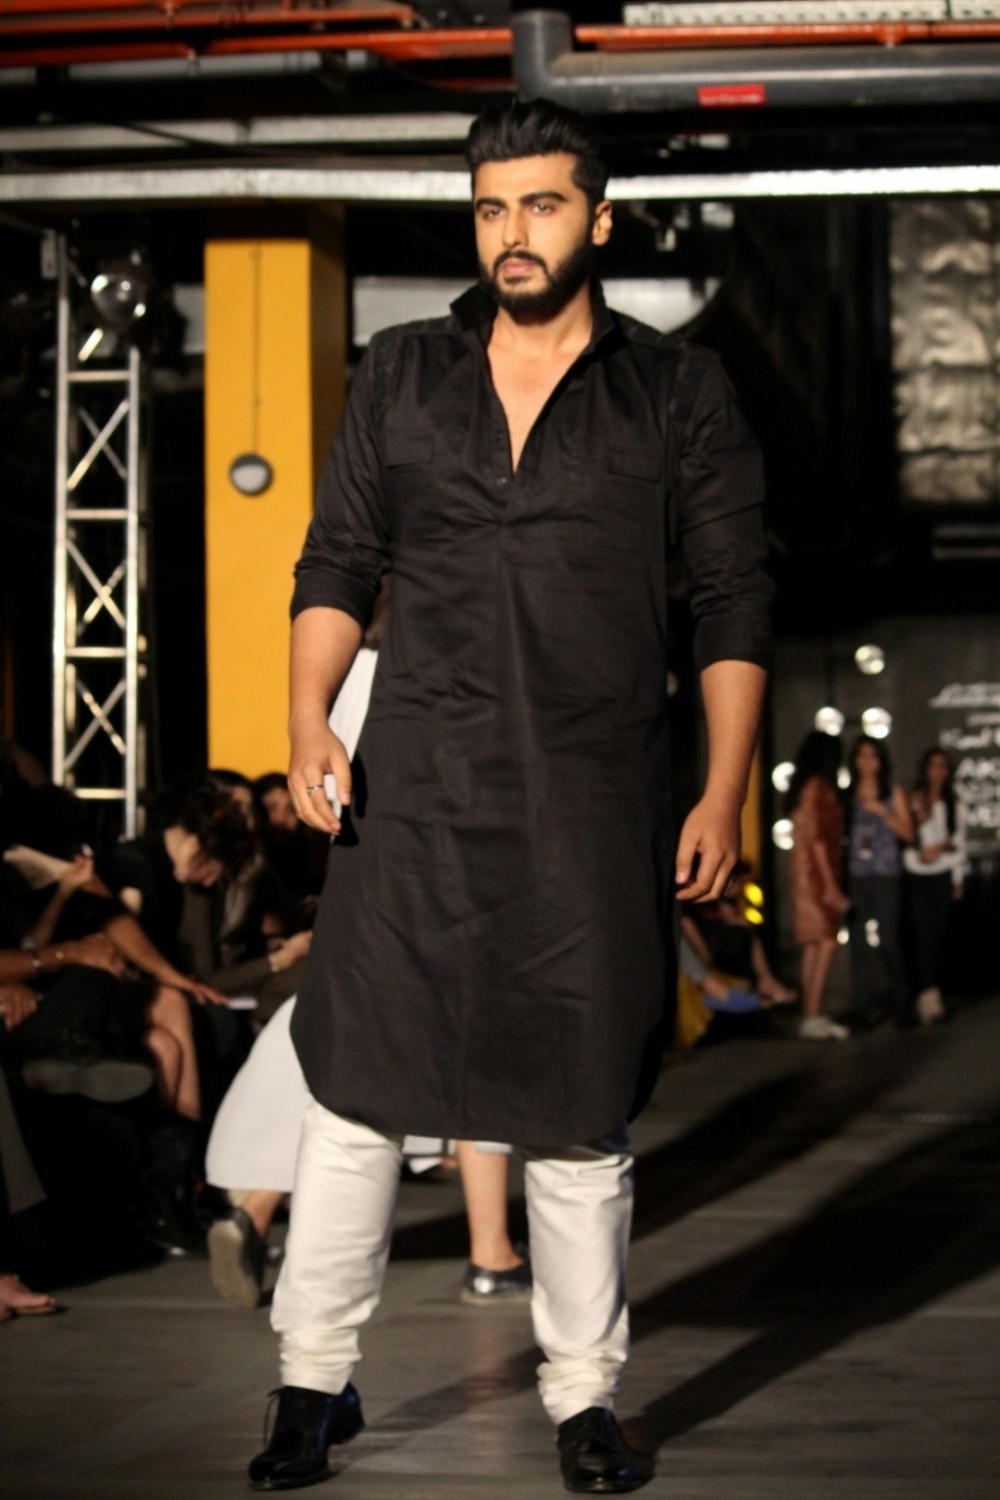 Mumbai:  Actor Arjun Kapoor during the Lakme Fashion Week Summer/Resort 2017 in Mumbai on Feb 1, 2017. (Photo: IANS)